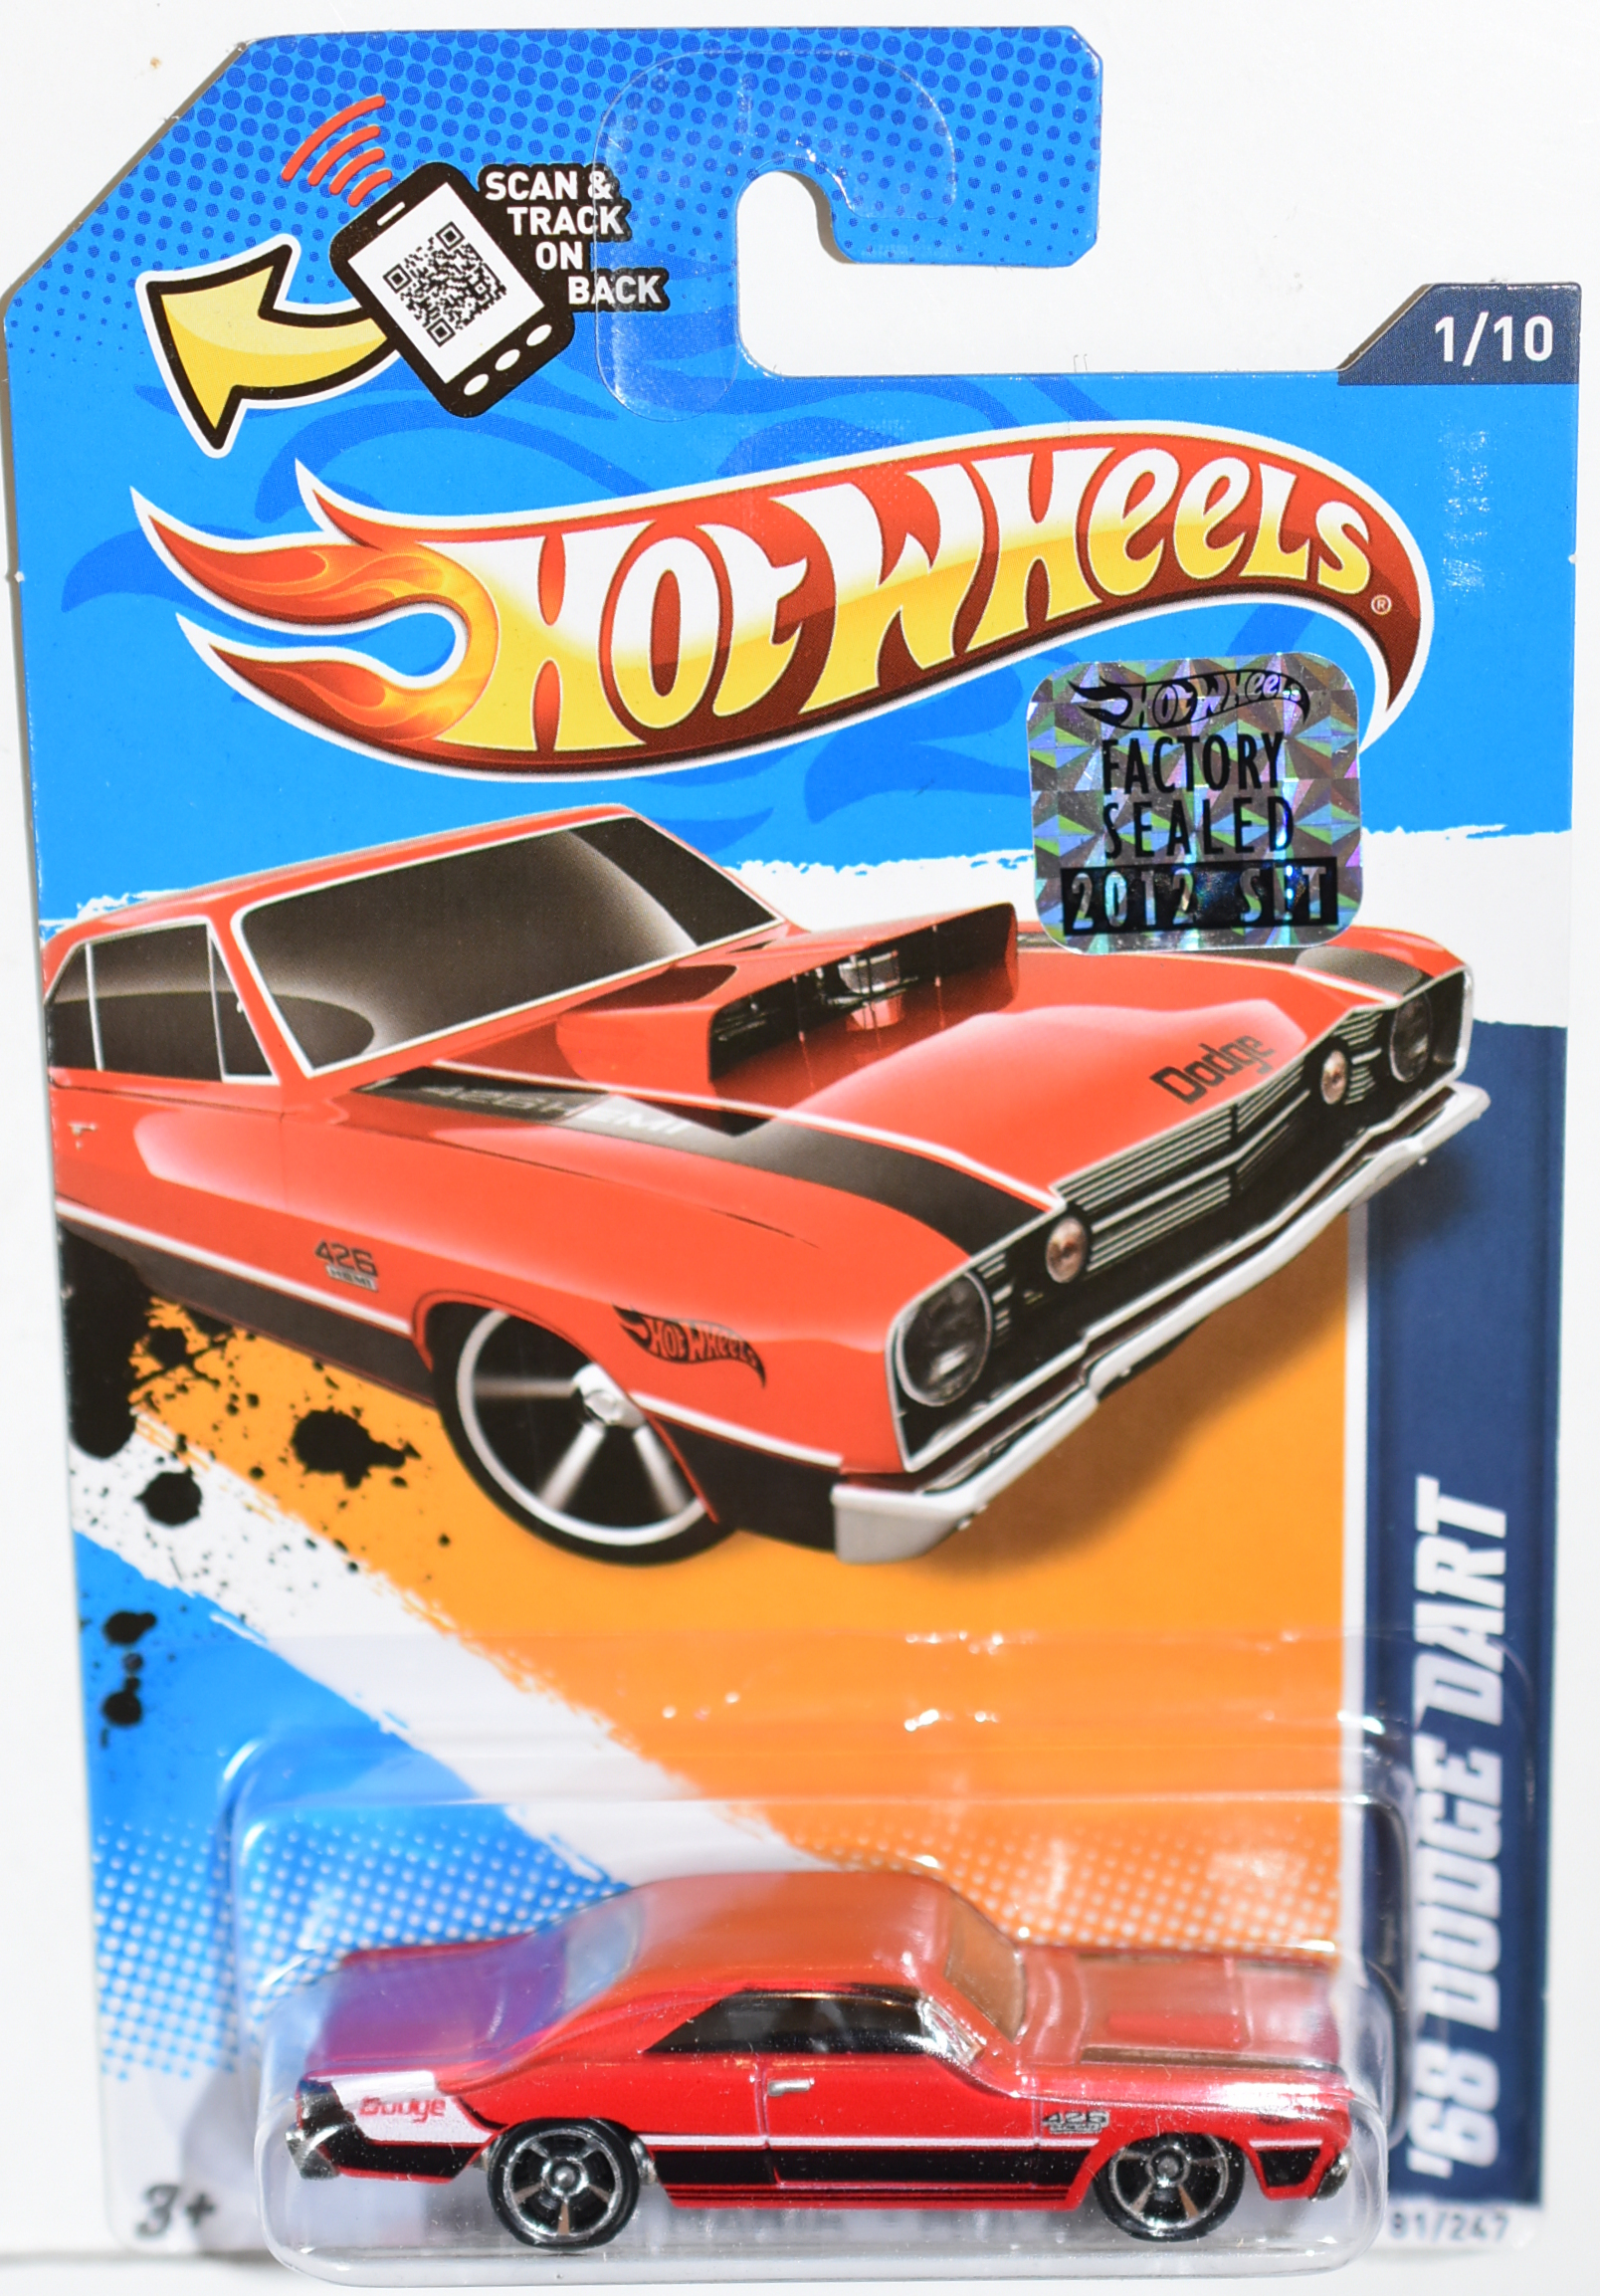 HOT WHEELS 2012 '68 DODGE DART RED FACTORY SEALED